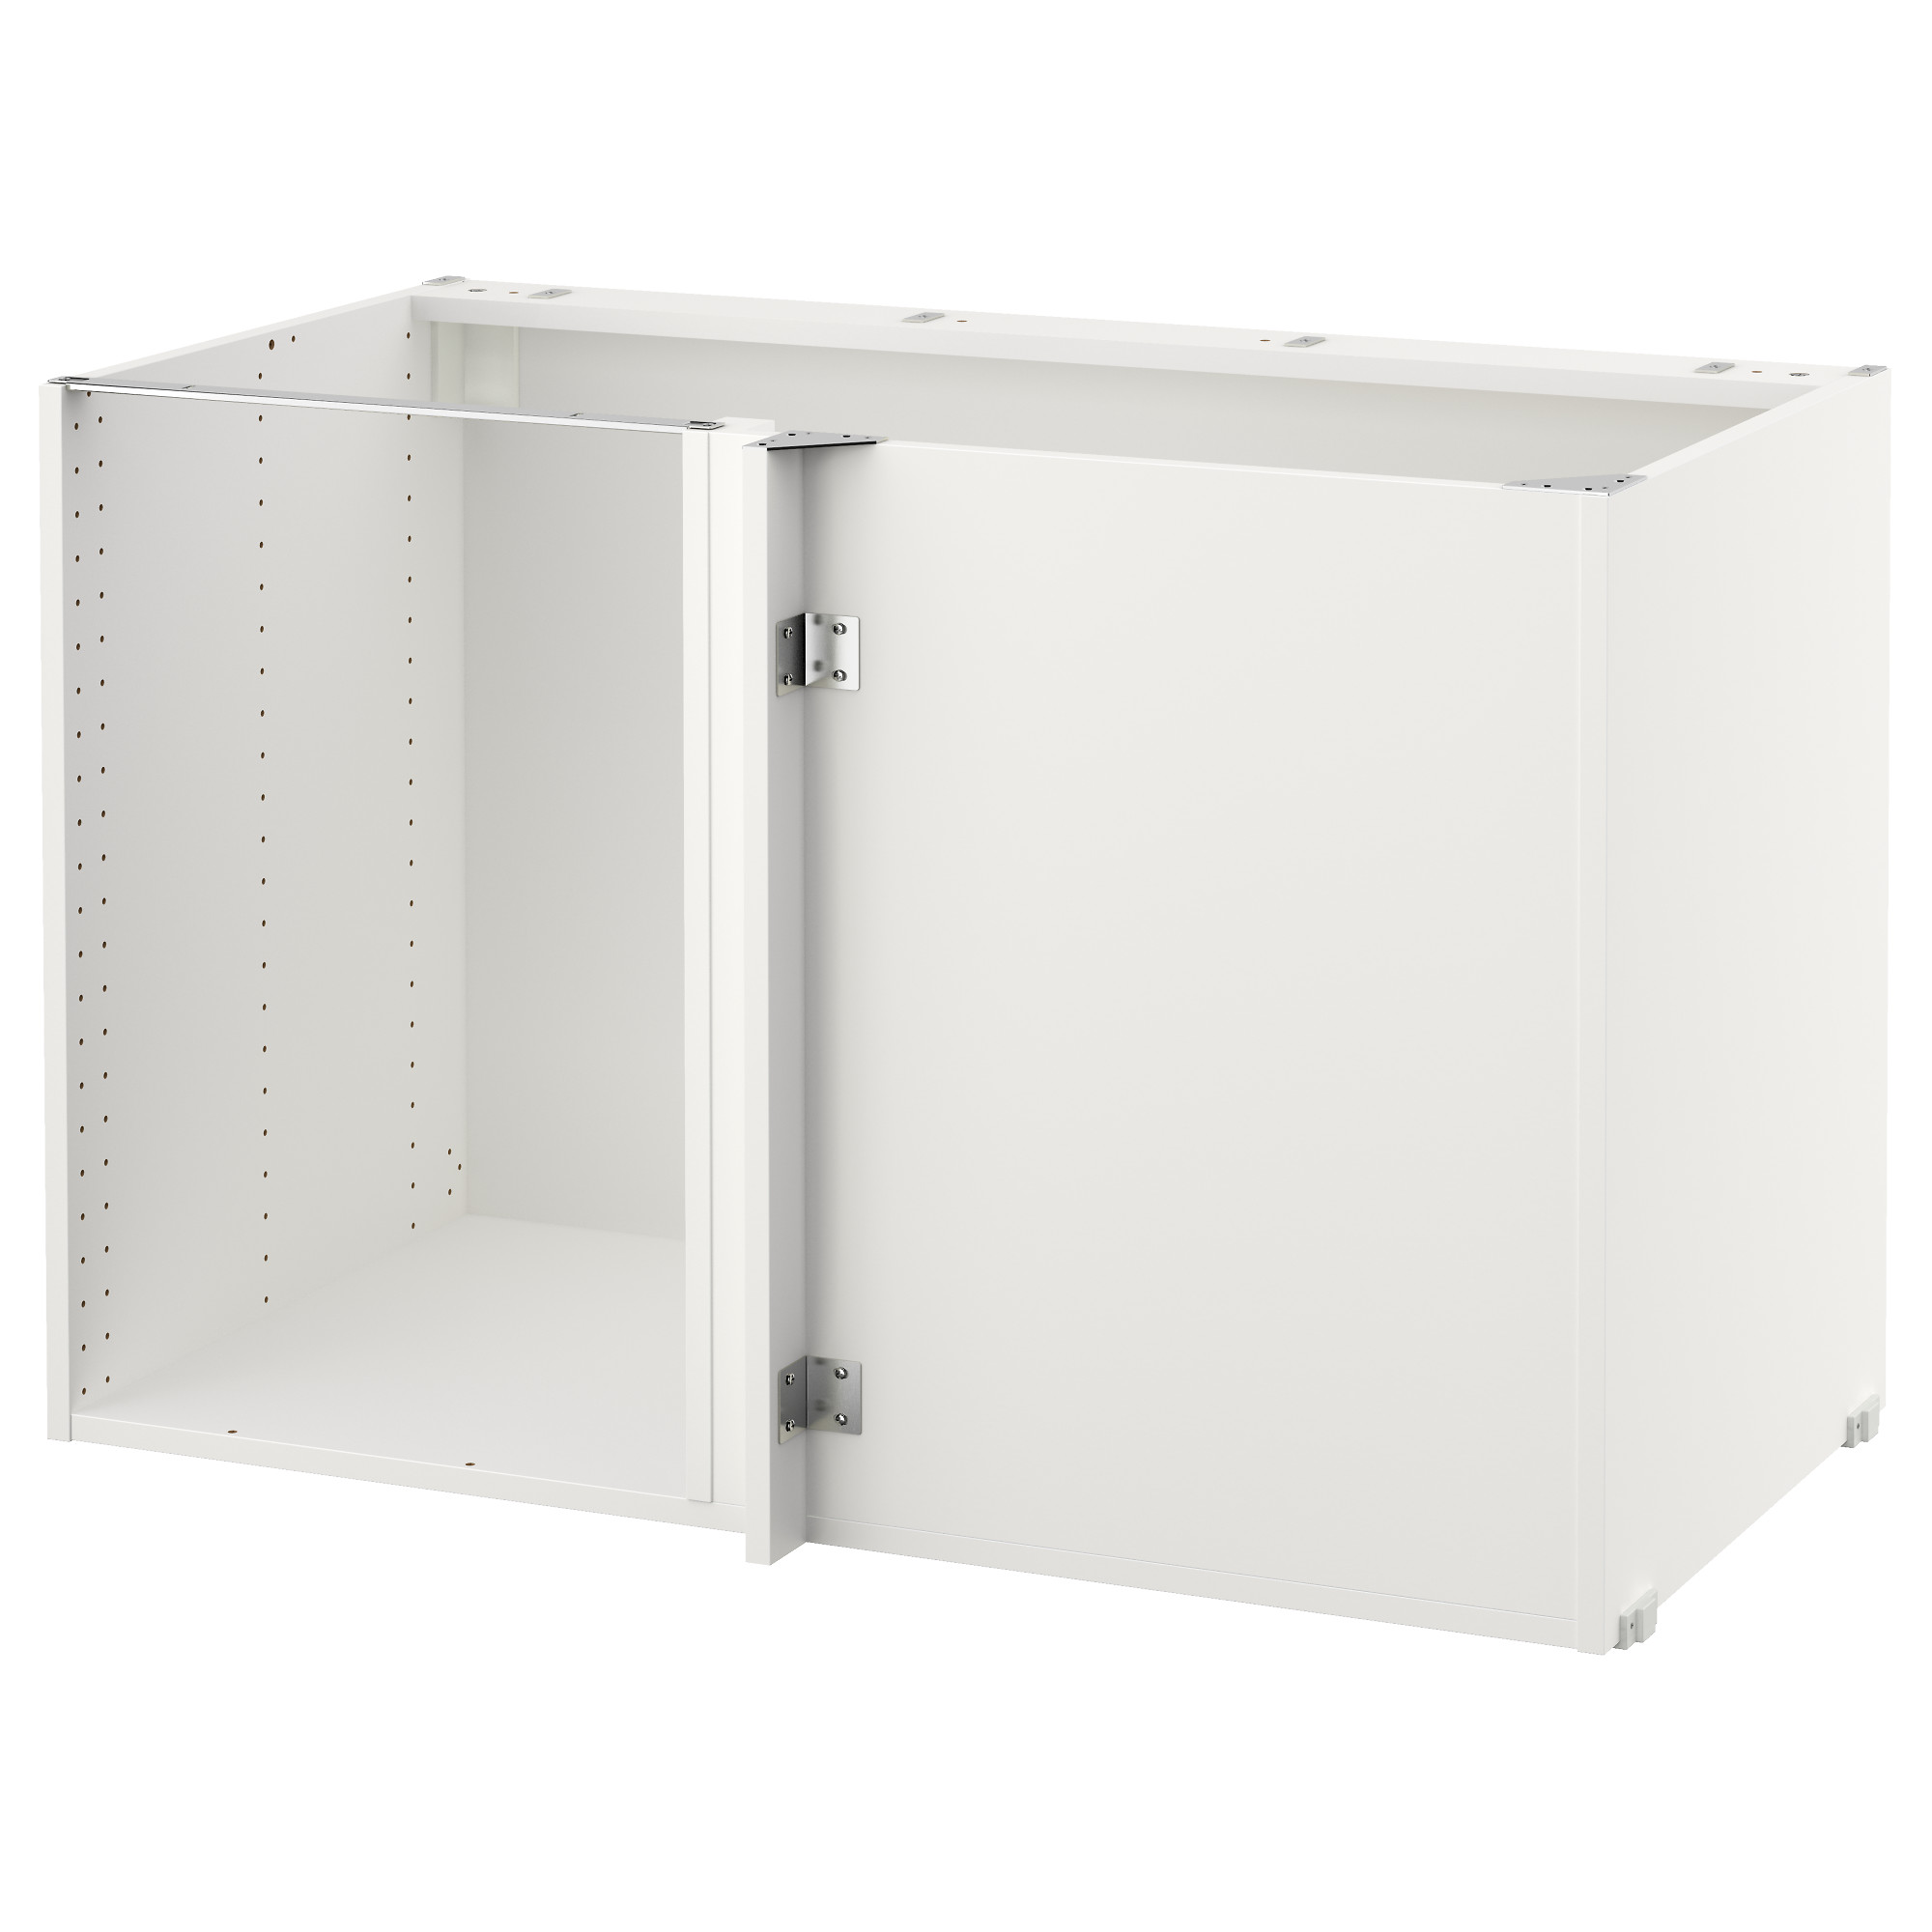 SEKTION base corner cabinet frame, white Depth without suspension rail: 23  5/8